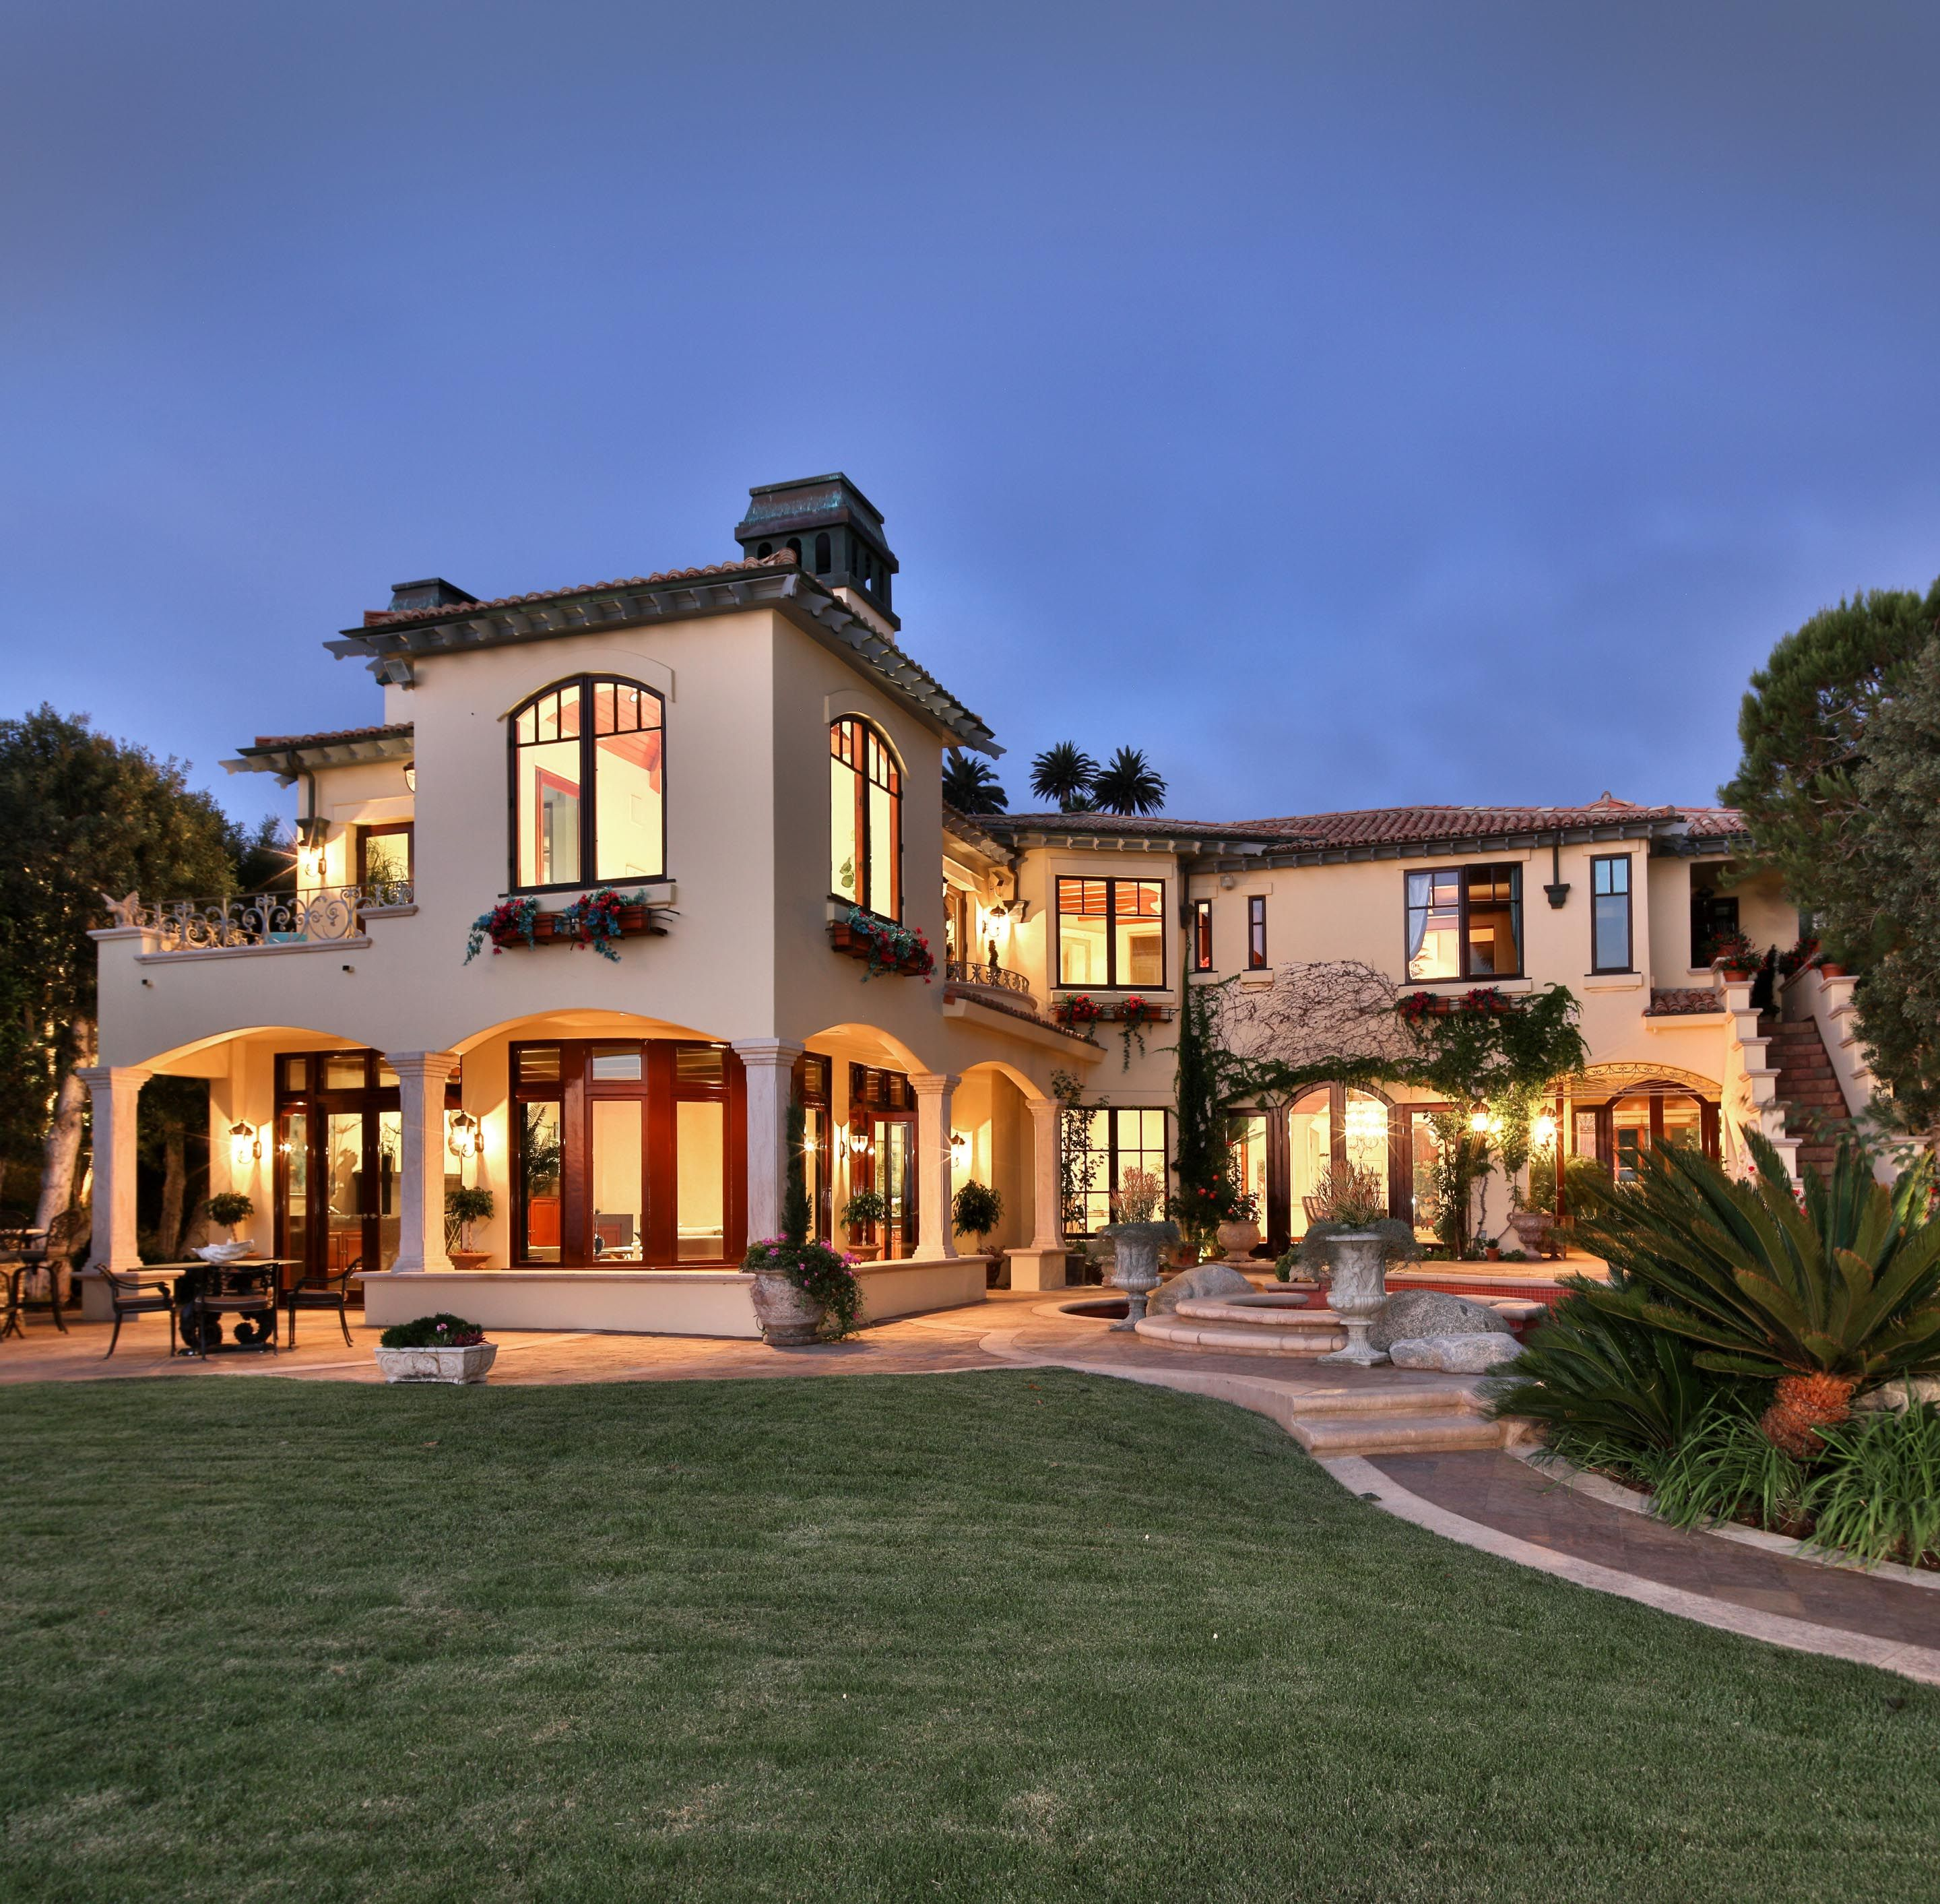 Luxury Spanish Villa Home Exterior